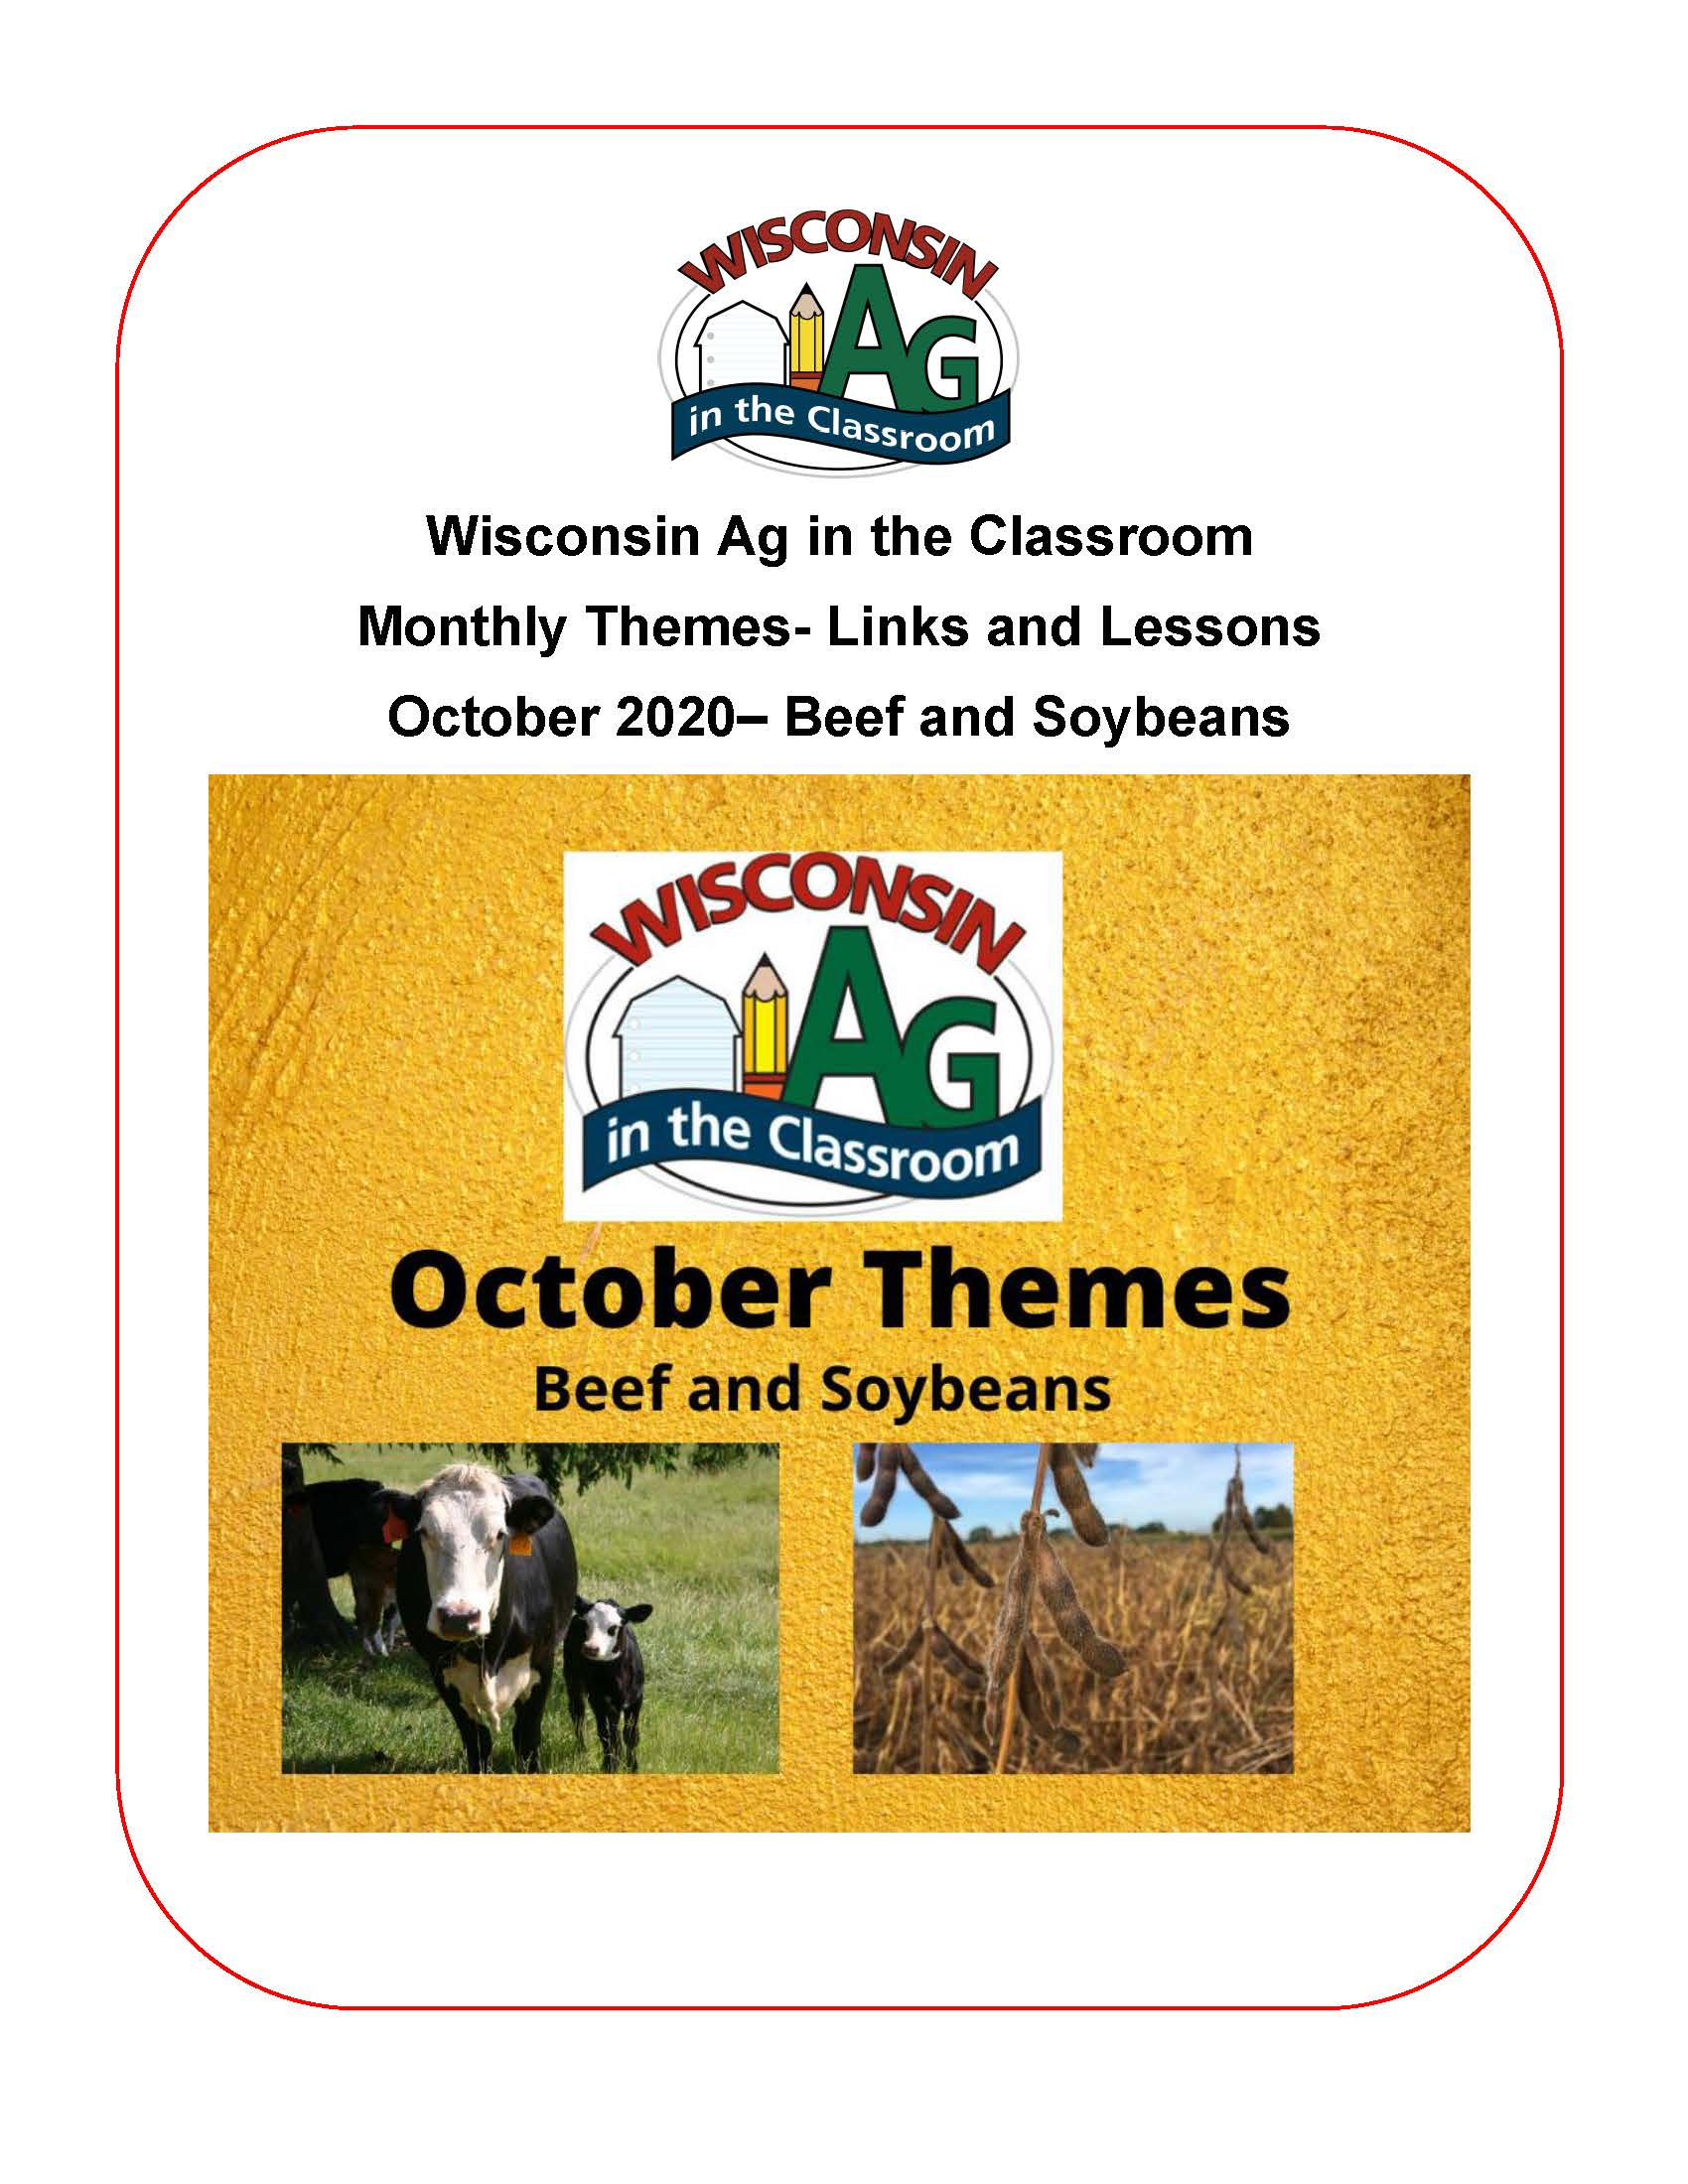 Monthly Themes- October 2020- Beef and Soybeans_Page_01